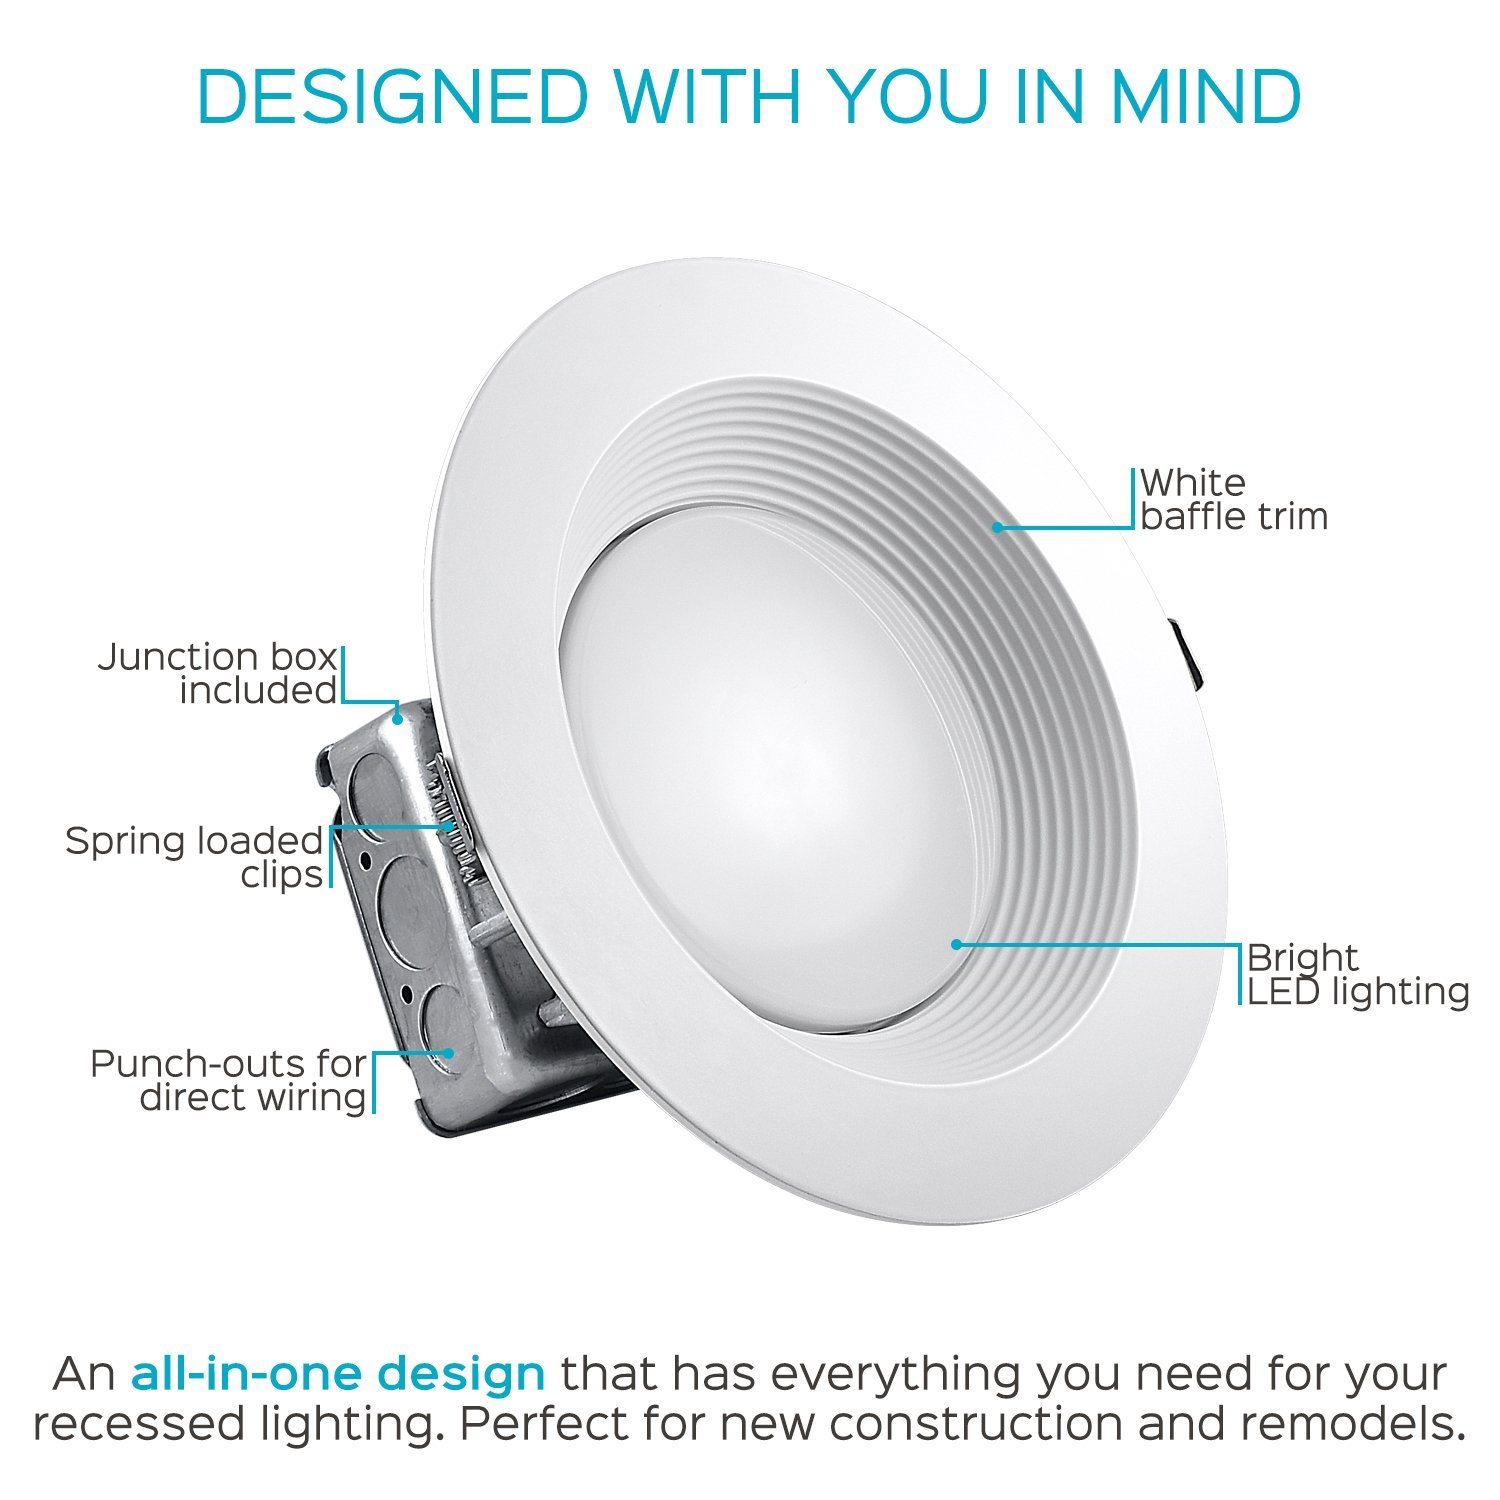 hight resolution of luxrite 8 inch led recessed lighting kit with junction box 25w 5000k bright white dimmable led downlight 2000lm 120v 277v airtight ic rated